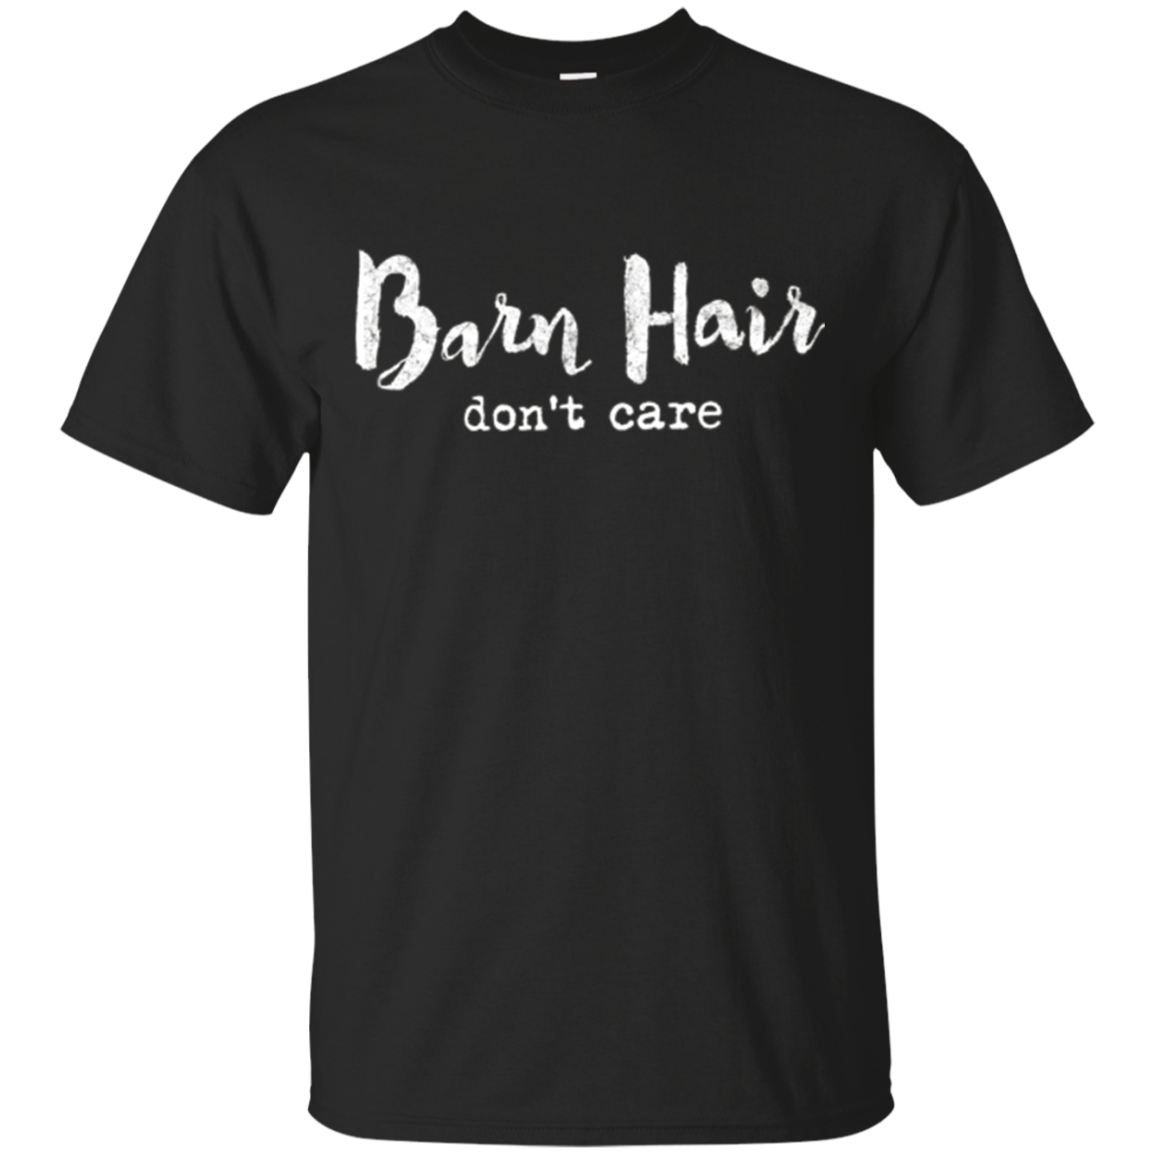 Barn Hair don't care T-shirt. Funny shirt for horse lovers!